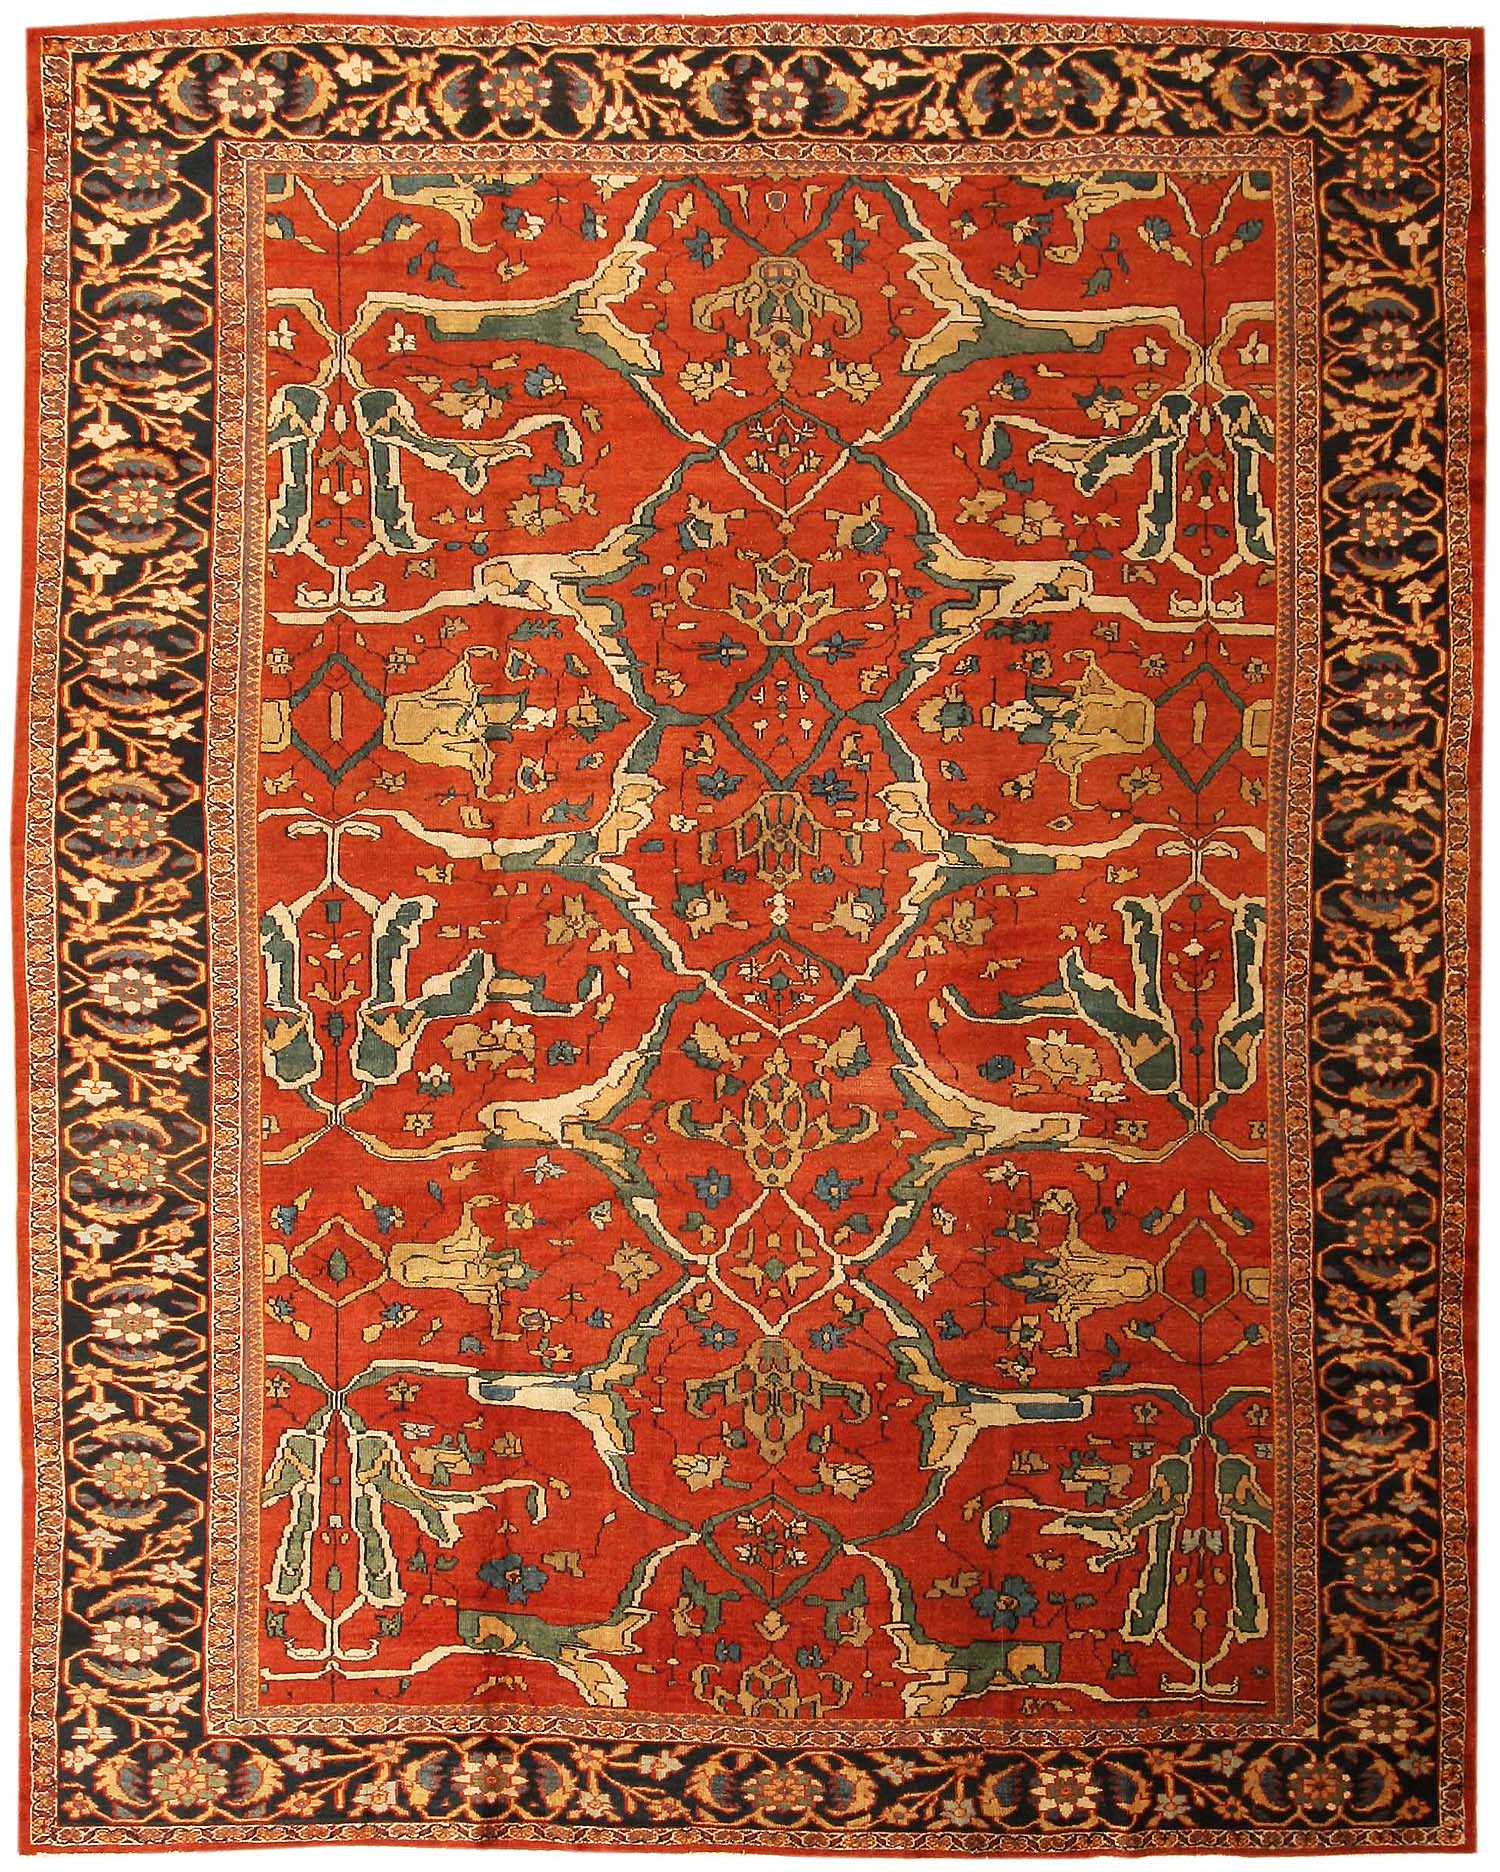 Antique Chinese Rug: Persia(n) Carpets All The Way.